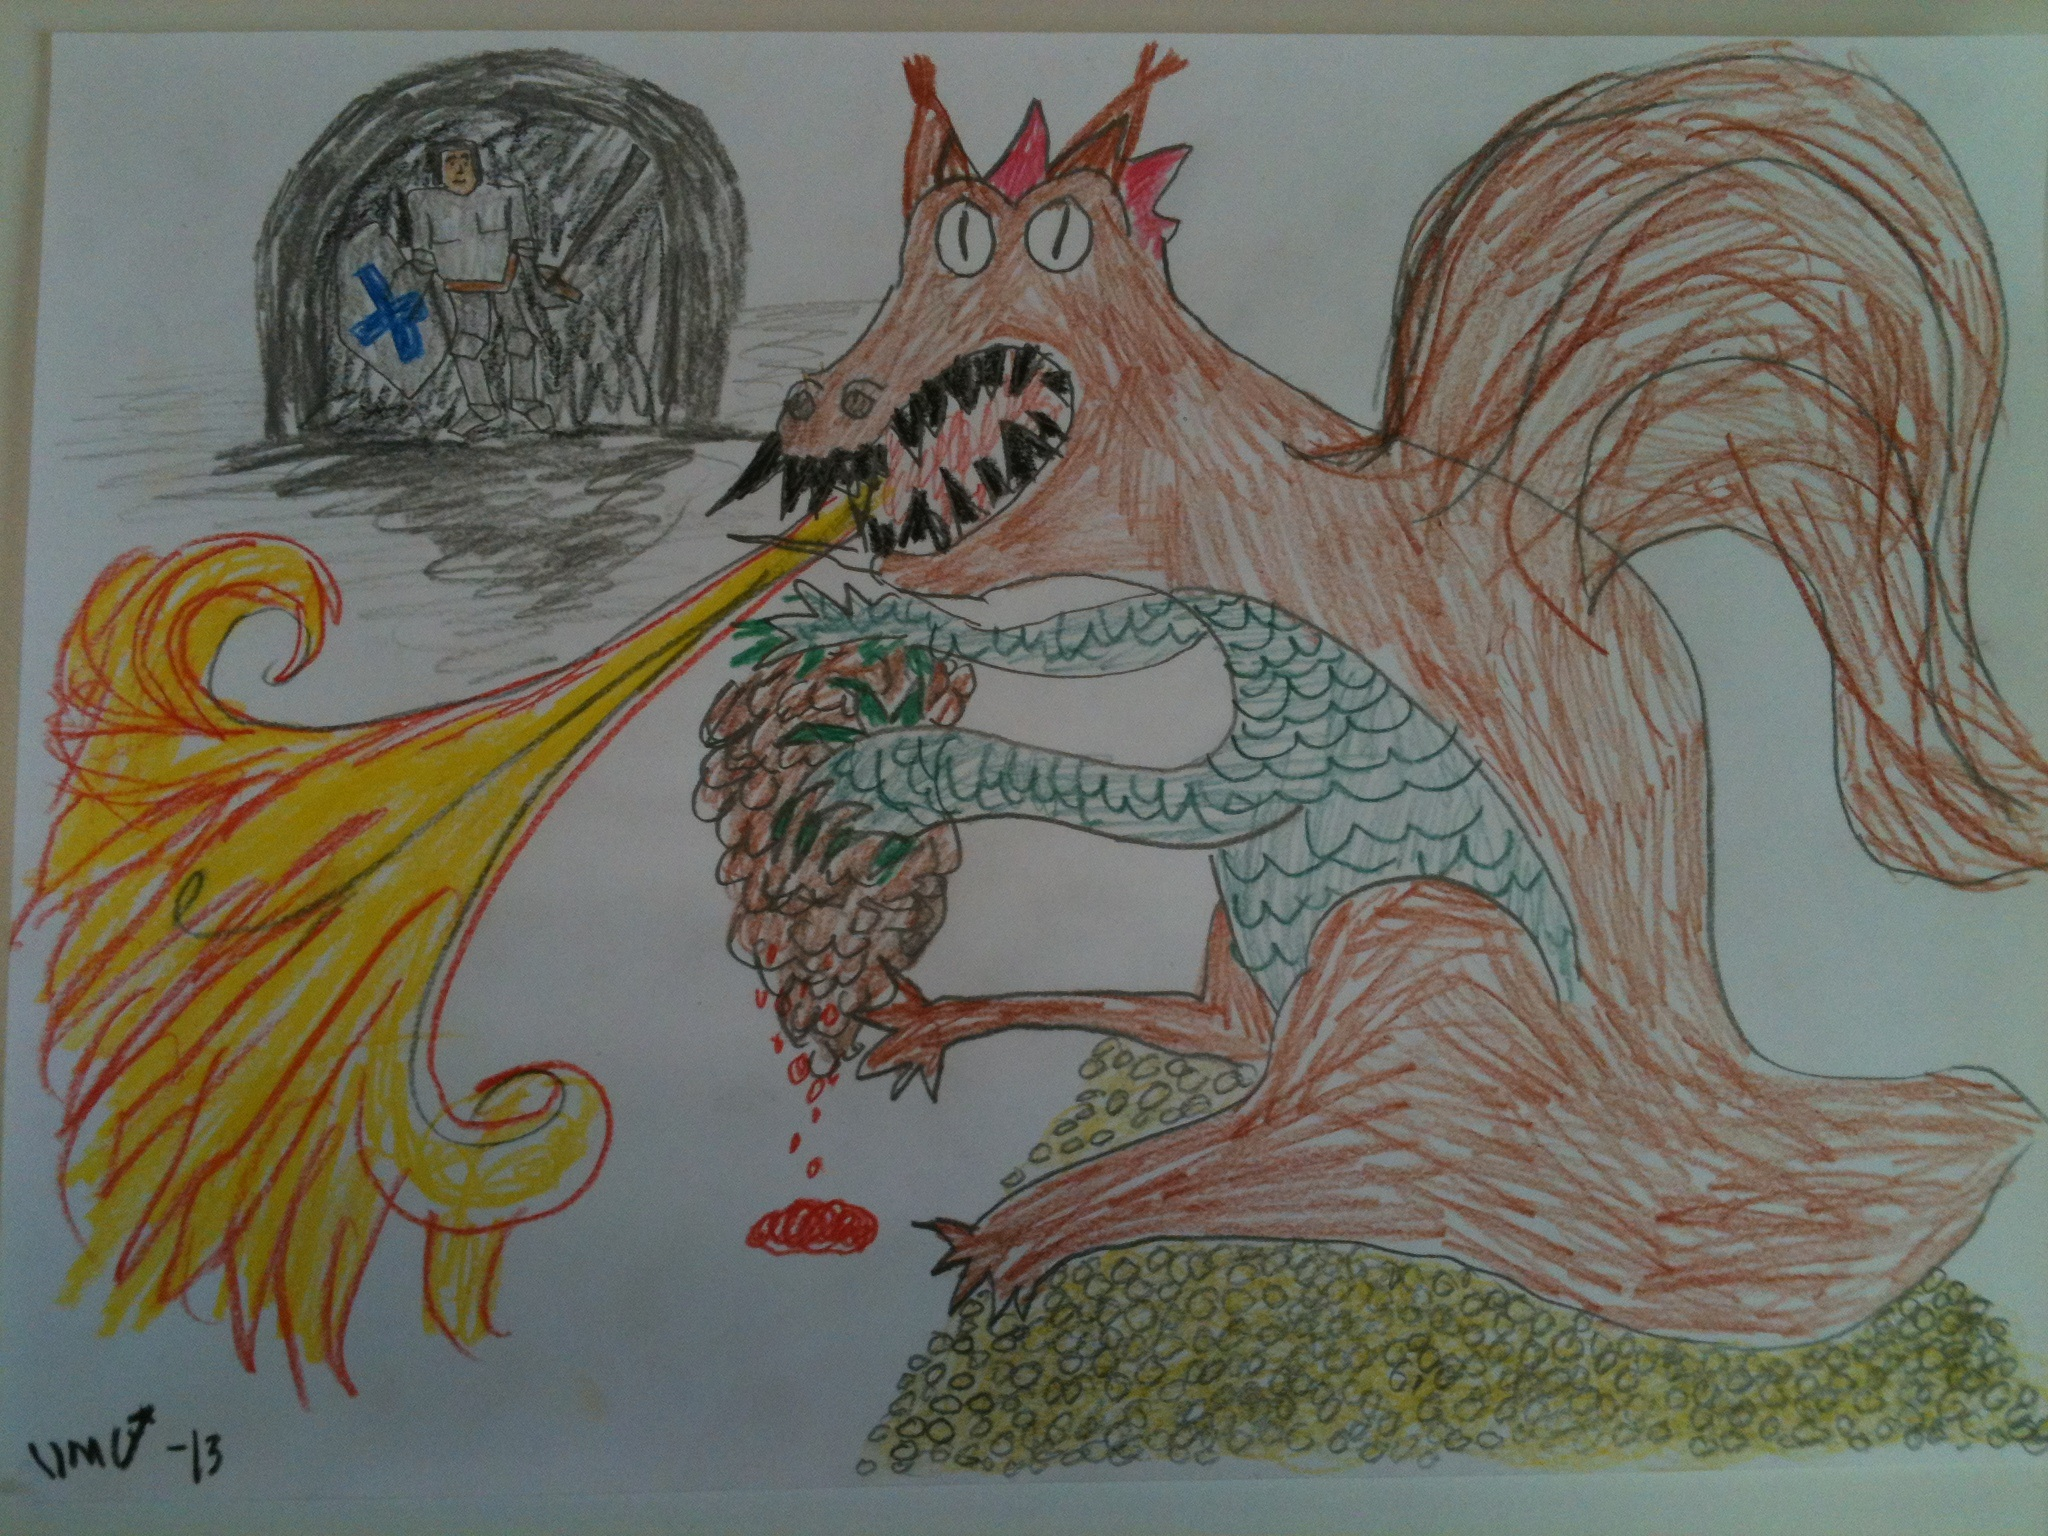 """Even though Worg was a seasoned adventurer he couldn't resist feeling mixed emotions upon meeting the Great Green Dragon Squirrel and the Horrible pine cone of death the Mad Wizard had summoned to protect the golden treasure of """"winter hoard"""""""